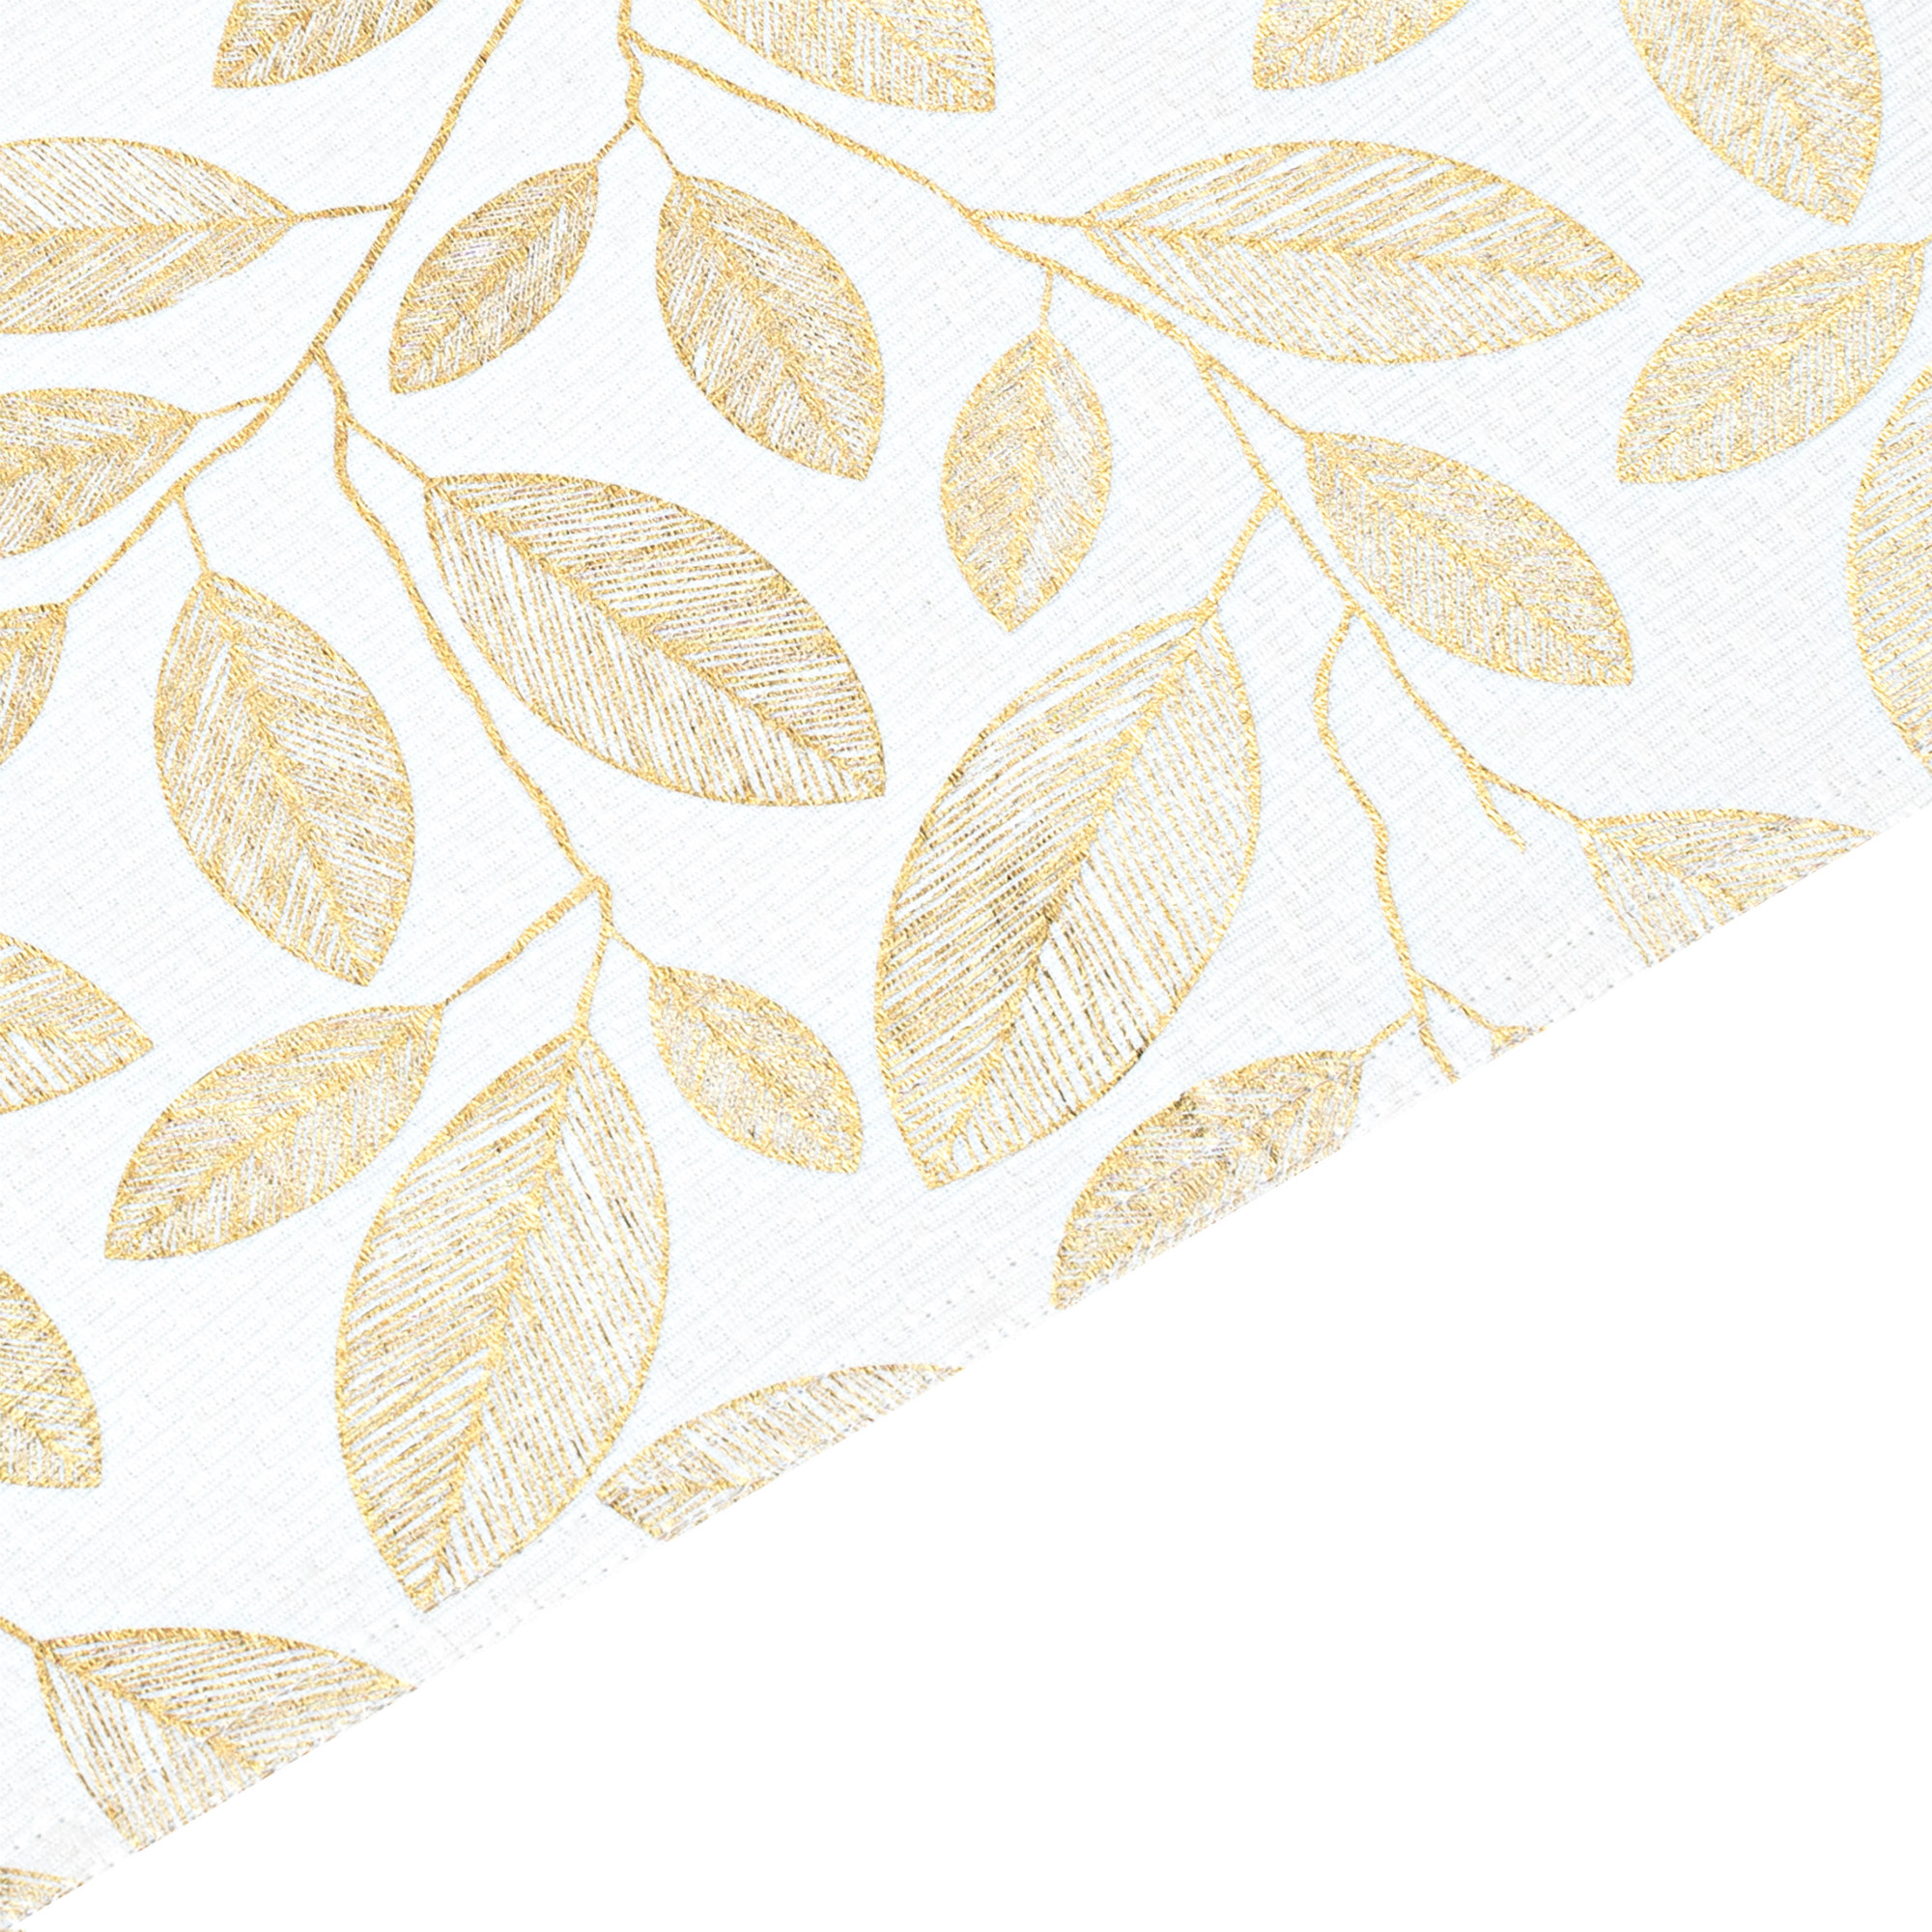 Gold Leaf Foil Printed Rectangle Placemats/Table Mats With Solid Lining. Set Of 2,4 Or 6 (Gold and White)